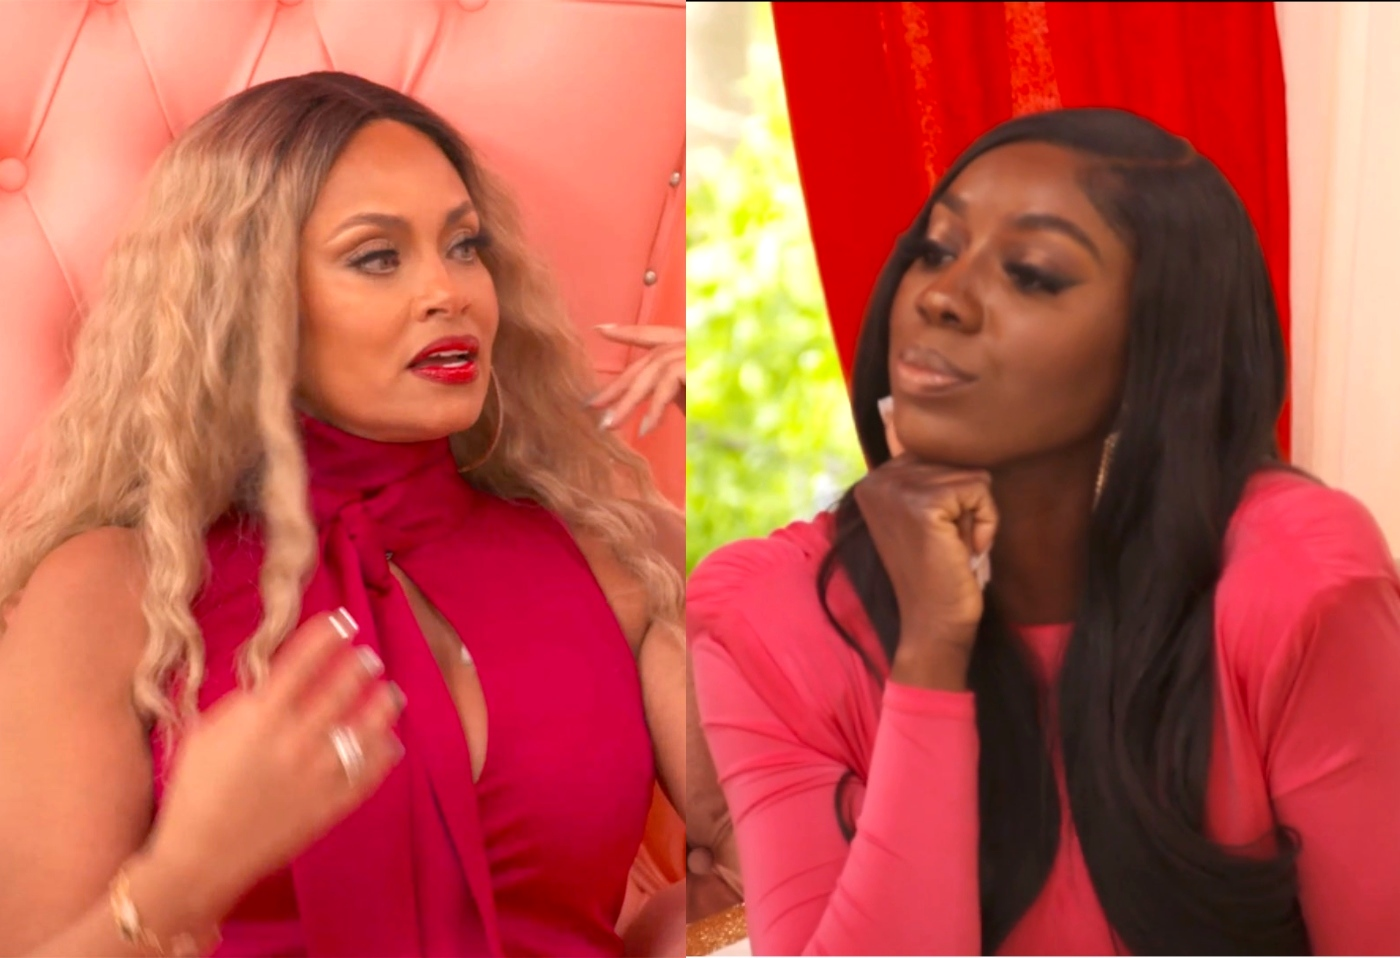 """RHOP Recap: Wendy Brings Up Shocking Rumor About Gizelle After She Mentions Eddie Rumor Again, Plus Candiace Confronts Mia for Asking if """"Husbandger"""" is on Payroll as """"Reasonably Shady"""" Launch Goes Awry"""